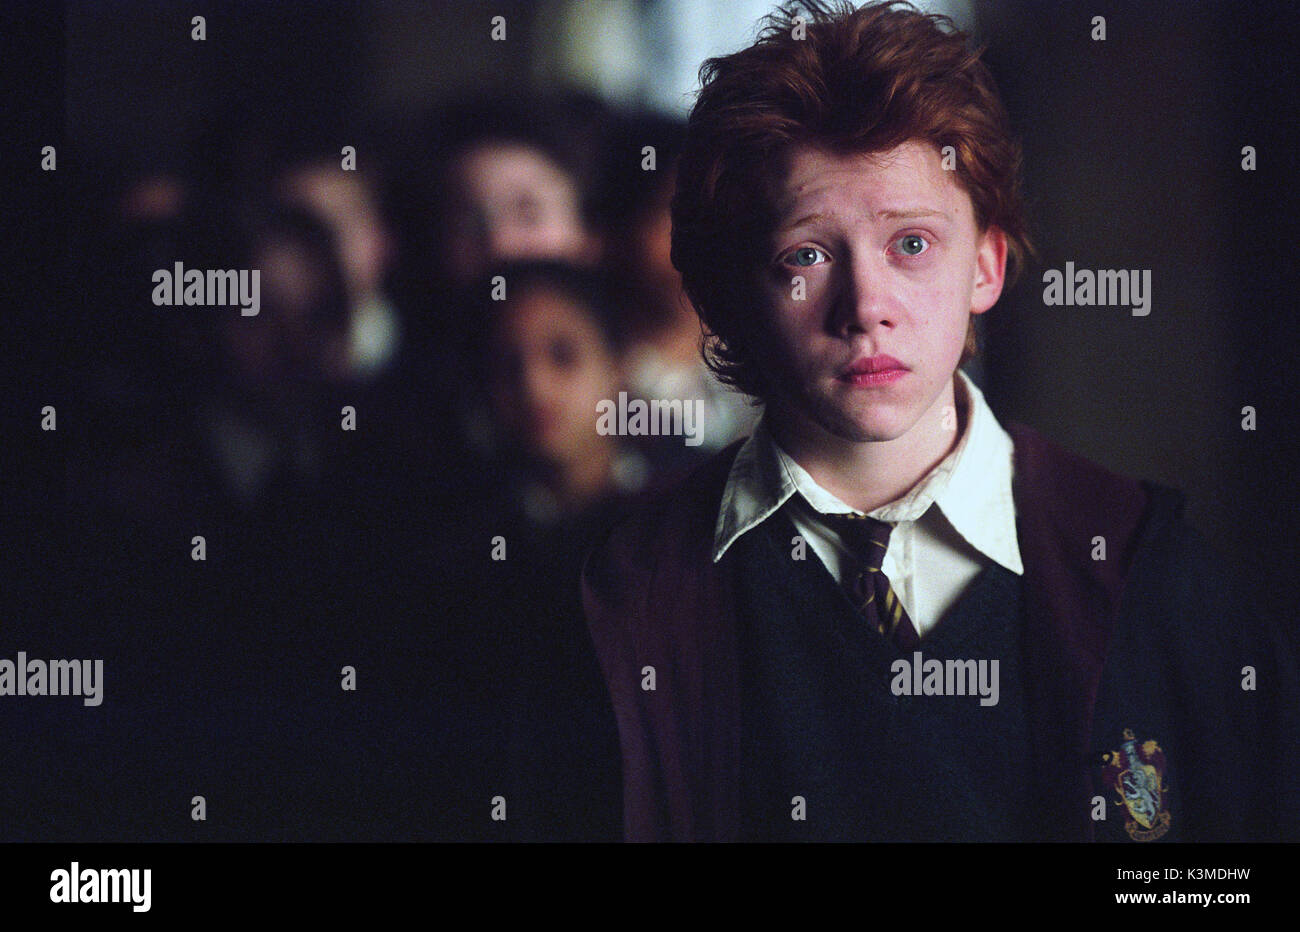 HARRY POTTER AND THE PRISONER OF AZKABAN [BR / US 2004] RUPERT GRINT as Ron Weasley     Date: 2004 - Stock Image